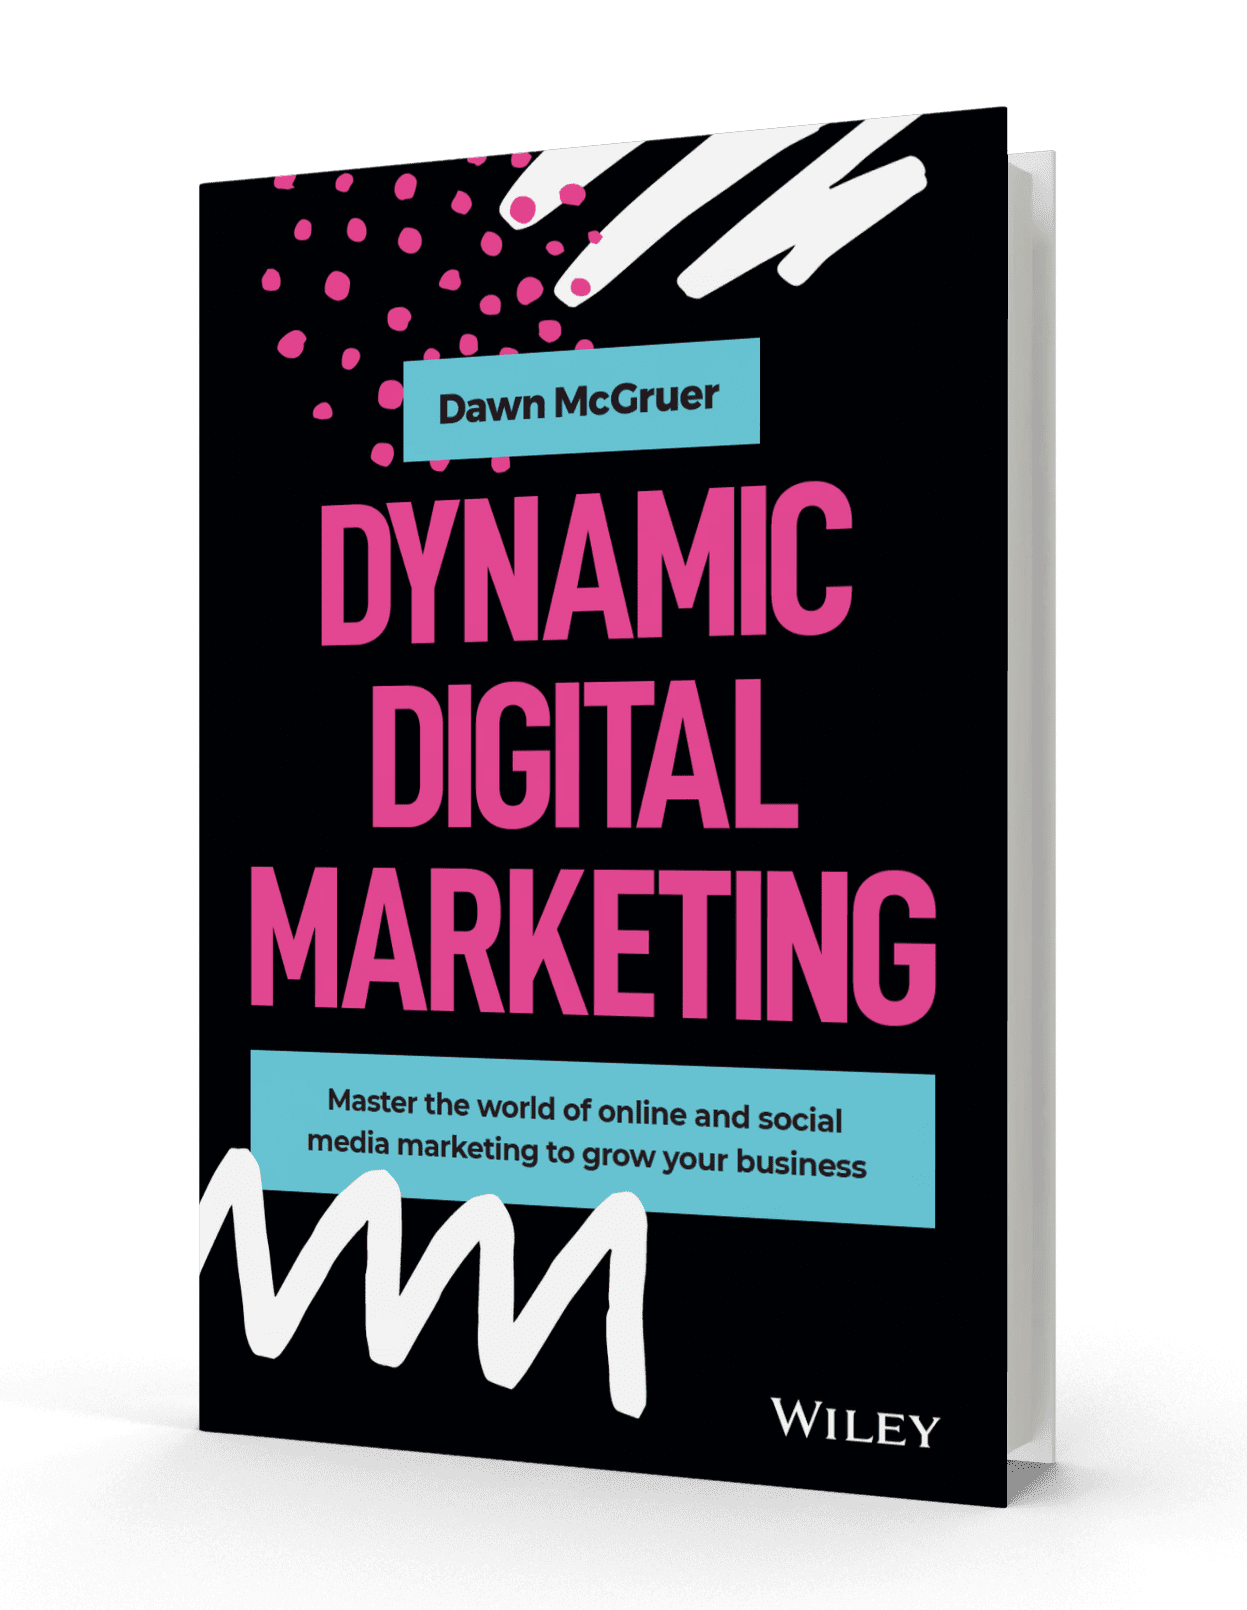 Dynamic Digital Marketing Book (upright)